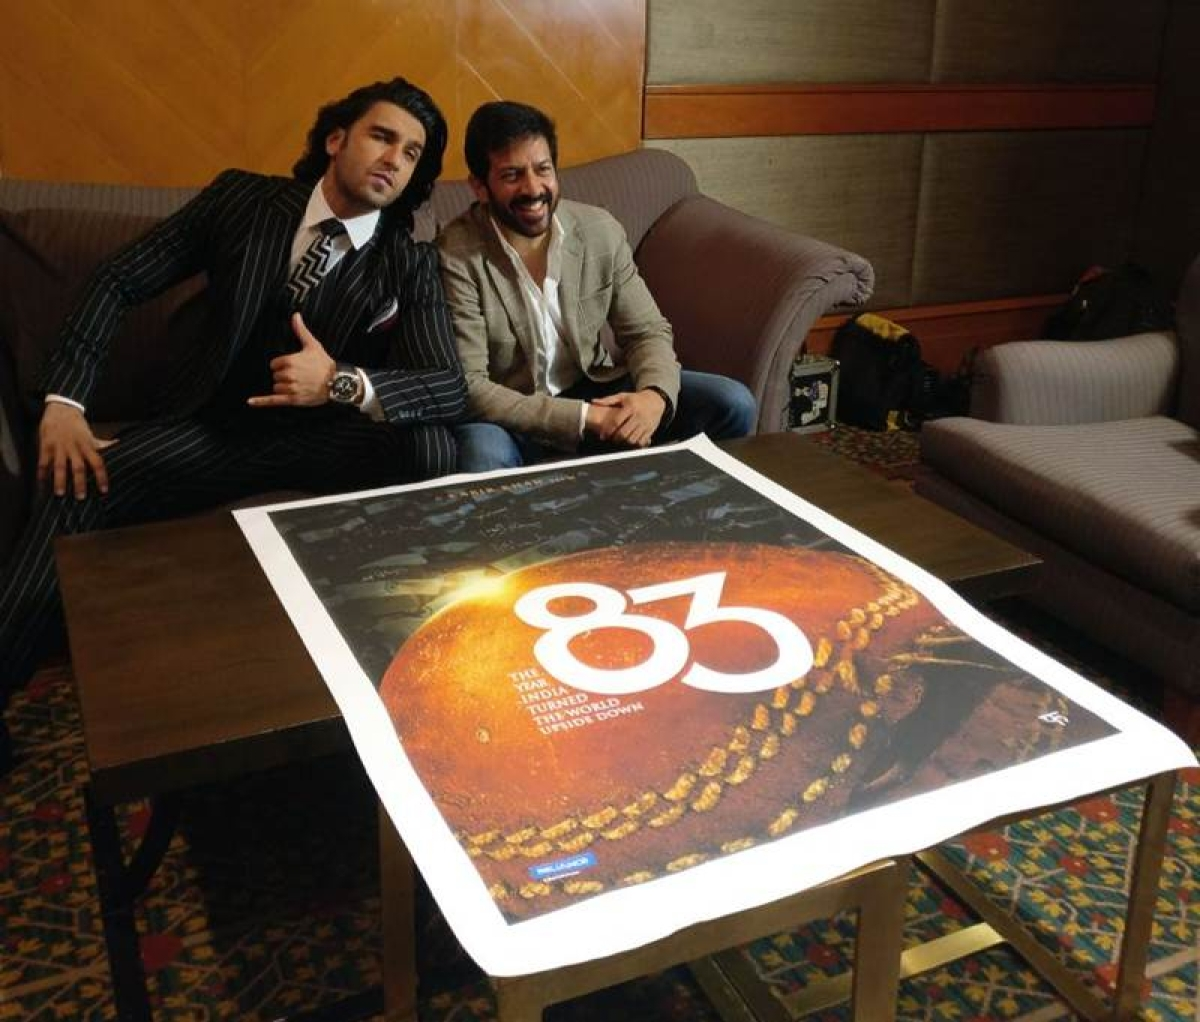 It's Official! Ranveer Singh starrer '83' based on 1983 Cricket World Cup to release on August 30, 2019